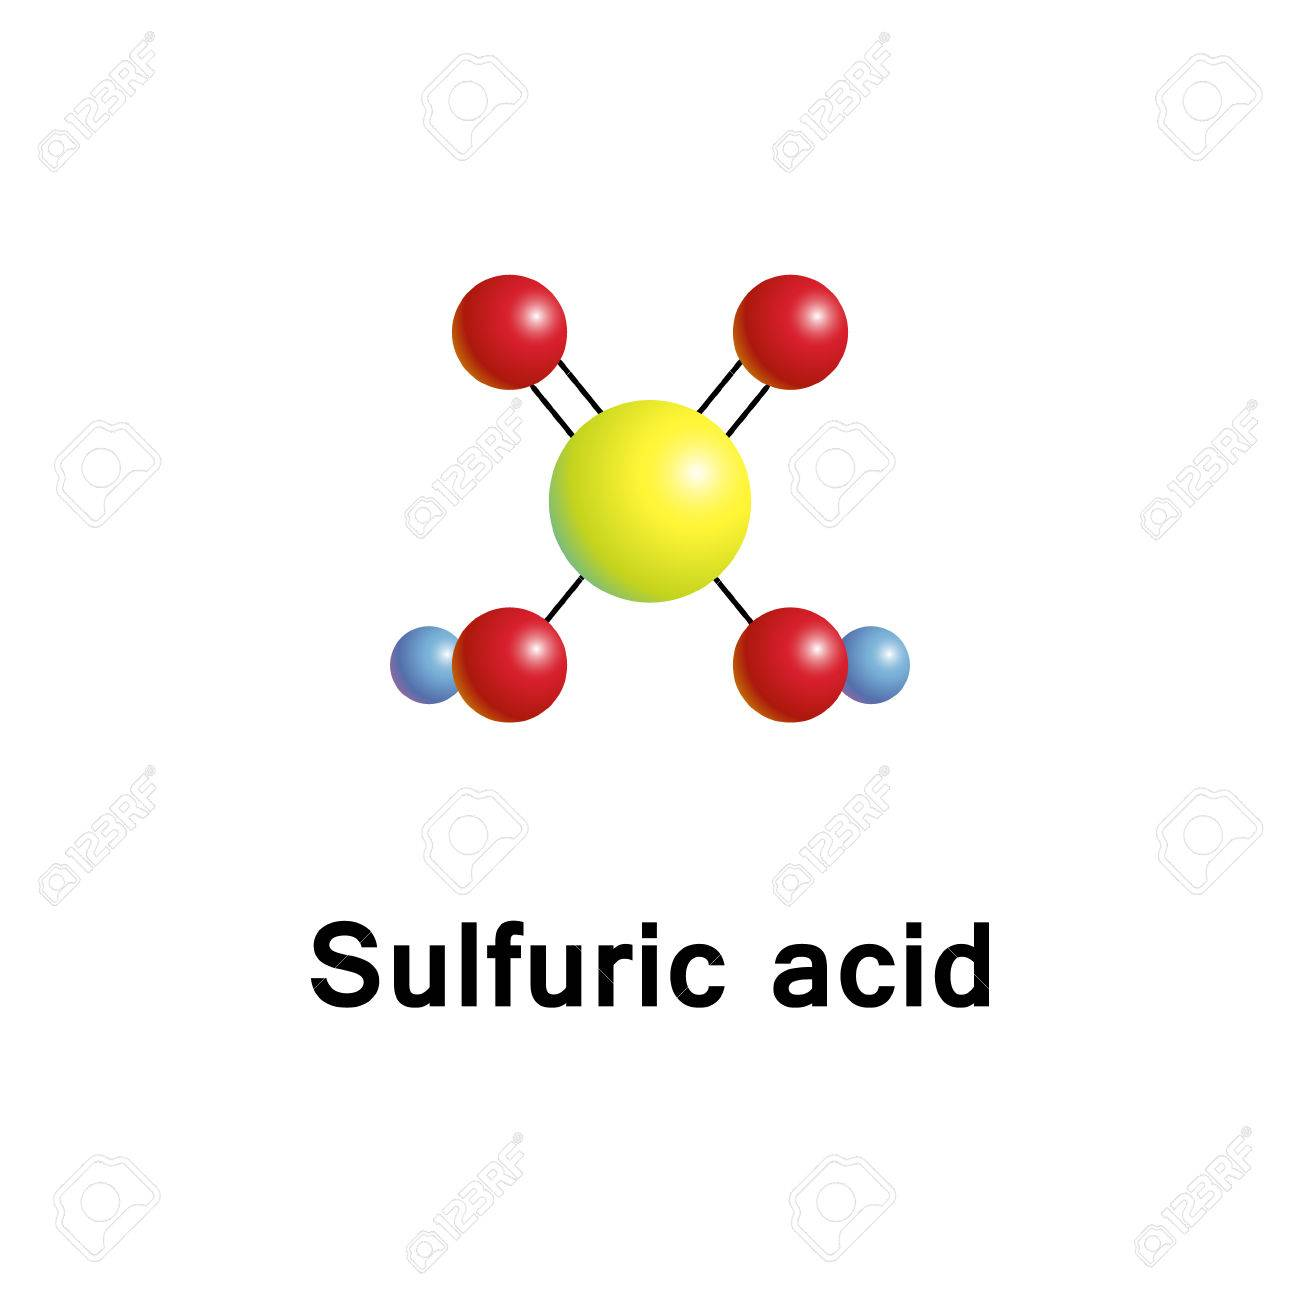 Sulfuric Acid Sulphuric Acid Is A Highly Corrosive Strong Mineral